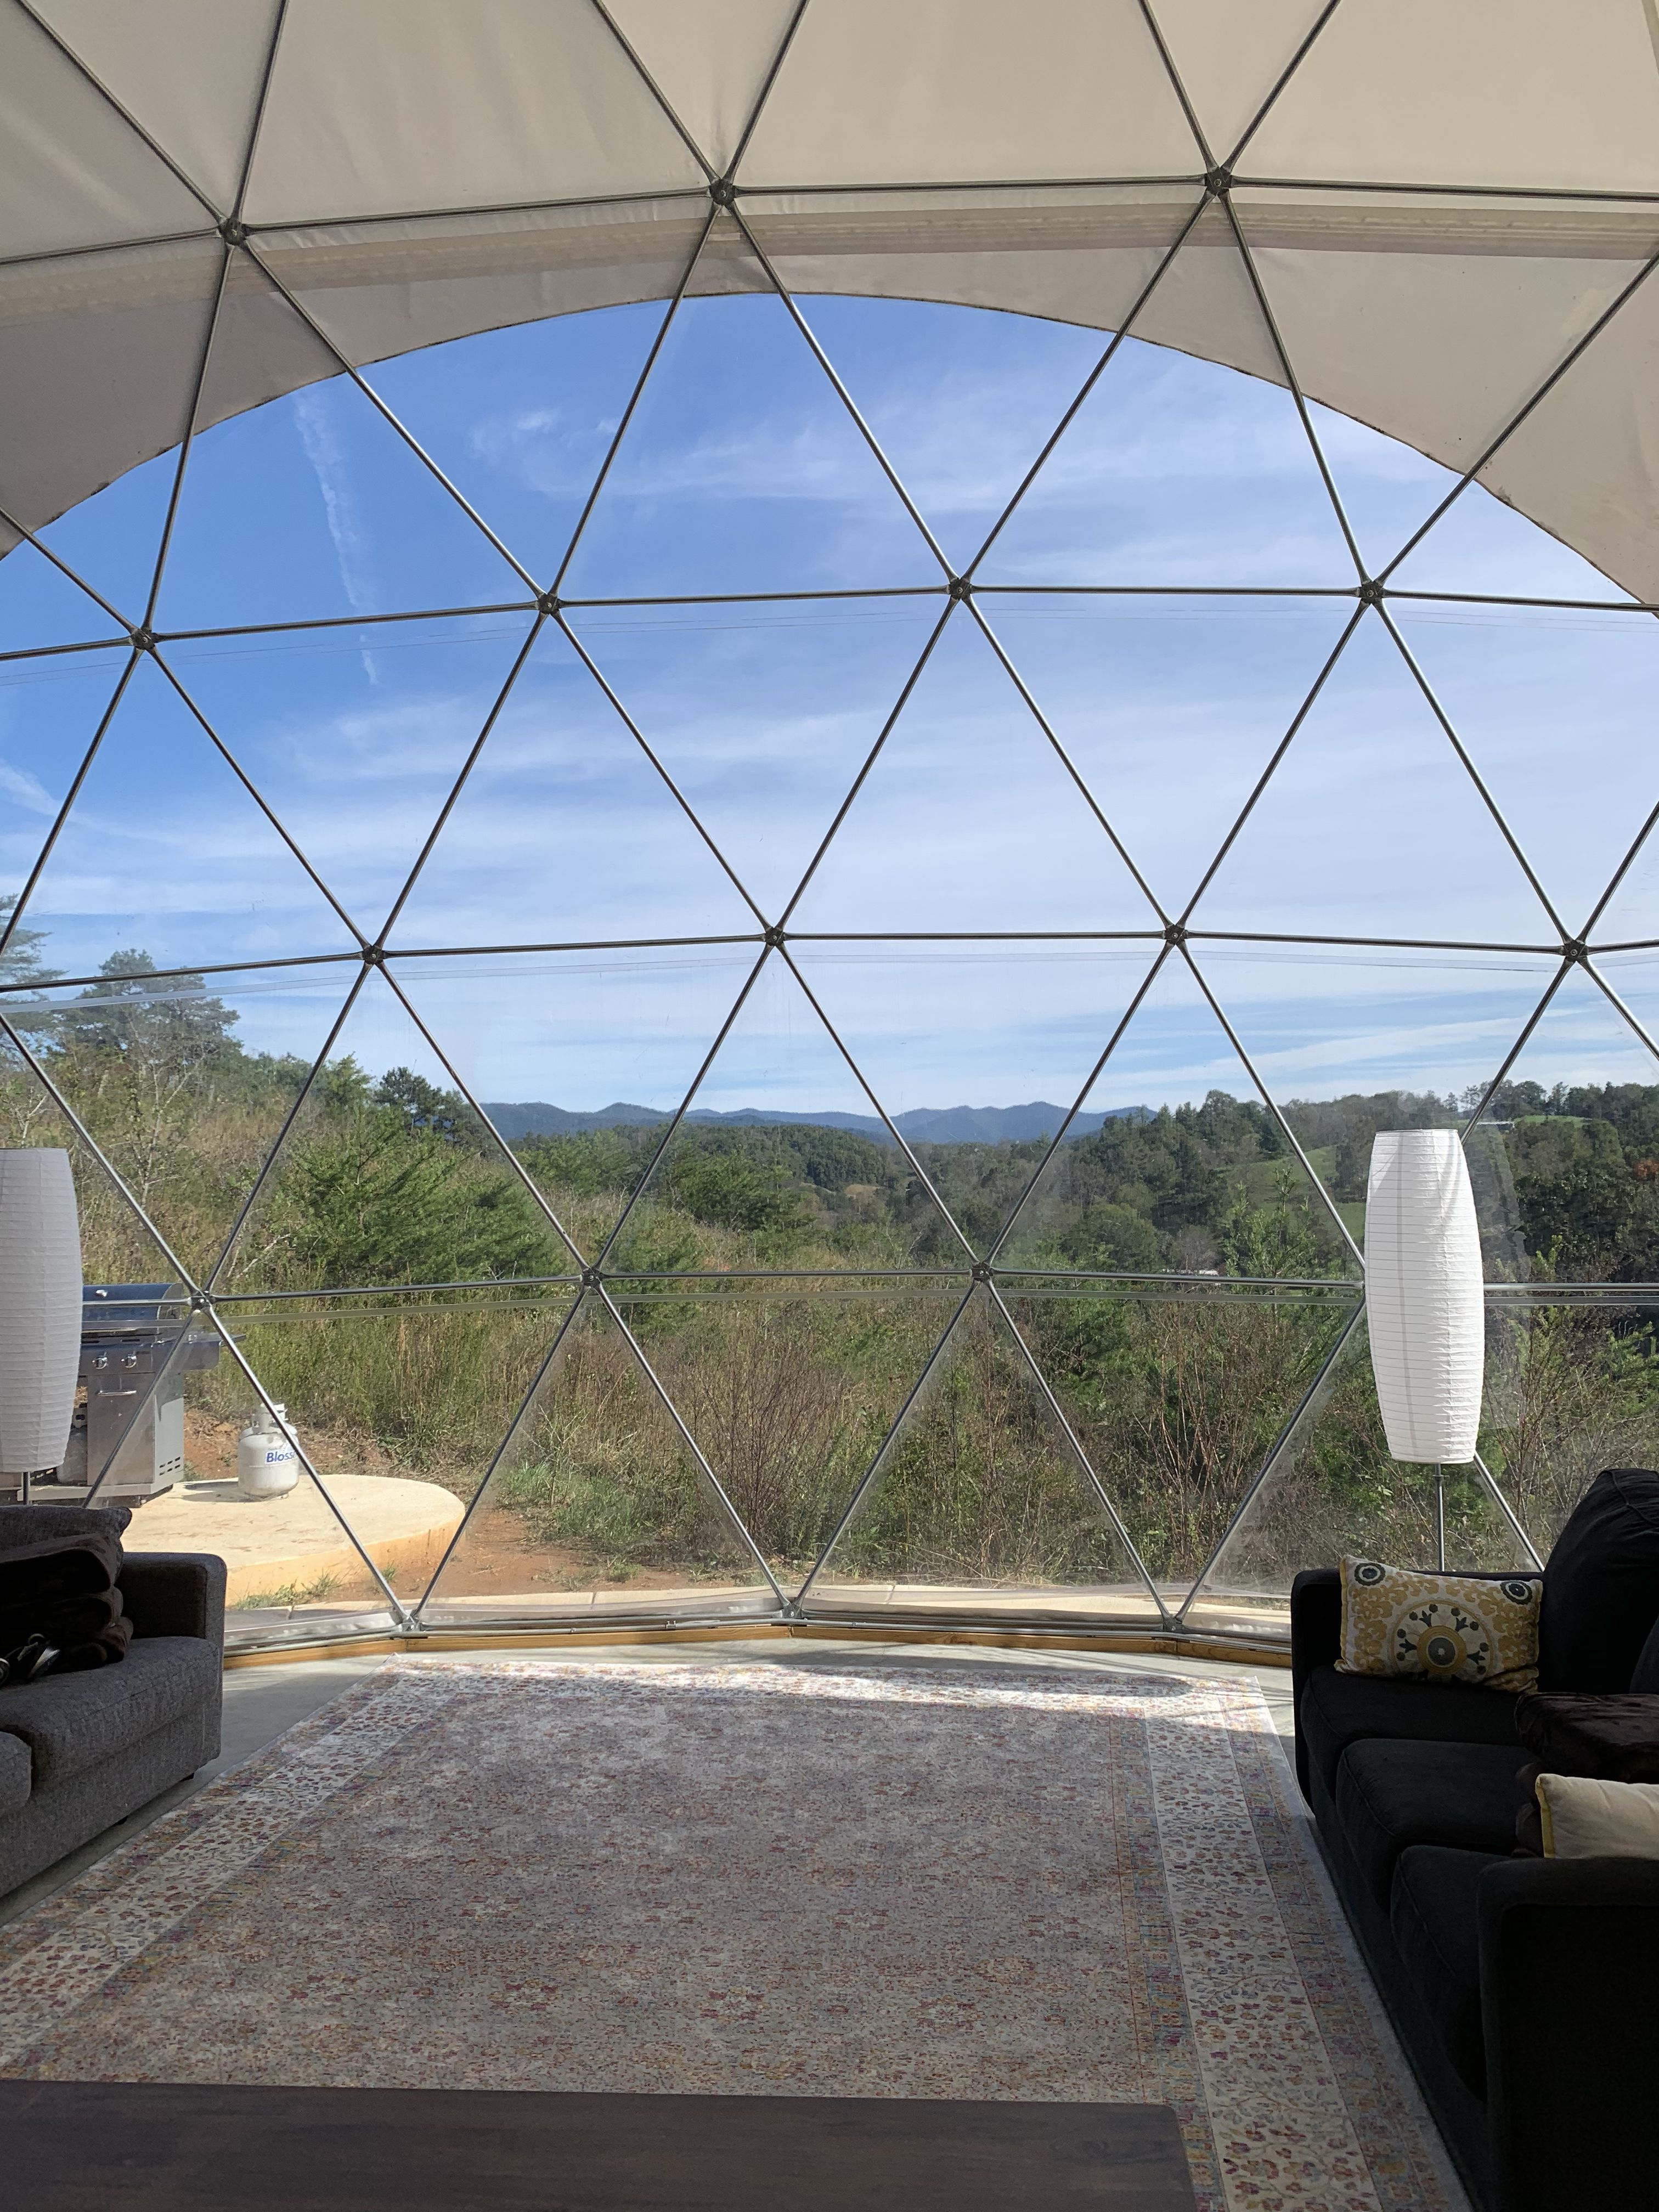 Huge Geodesic Dome View Asheville Glamping Glamping Tent Glamping